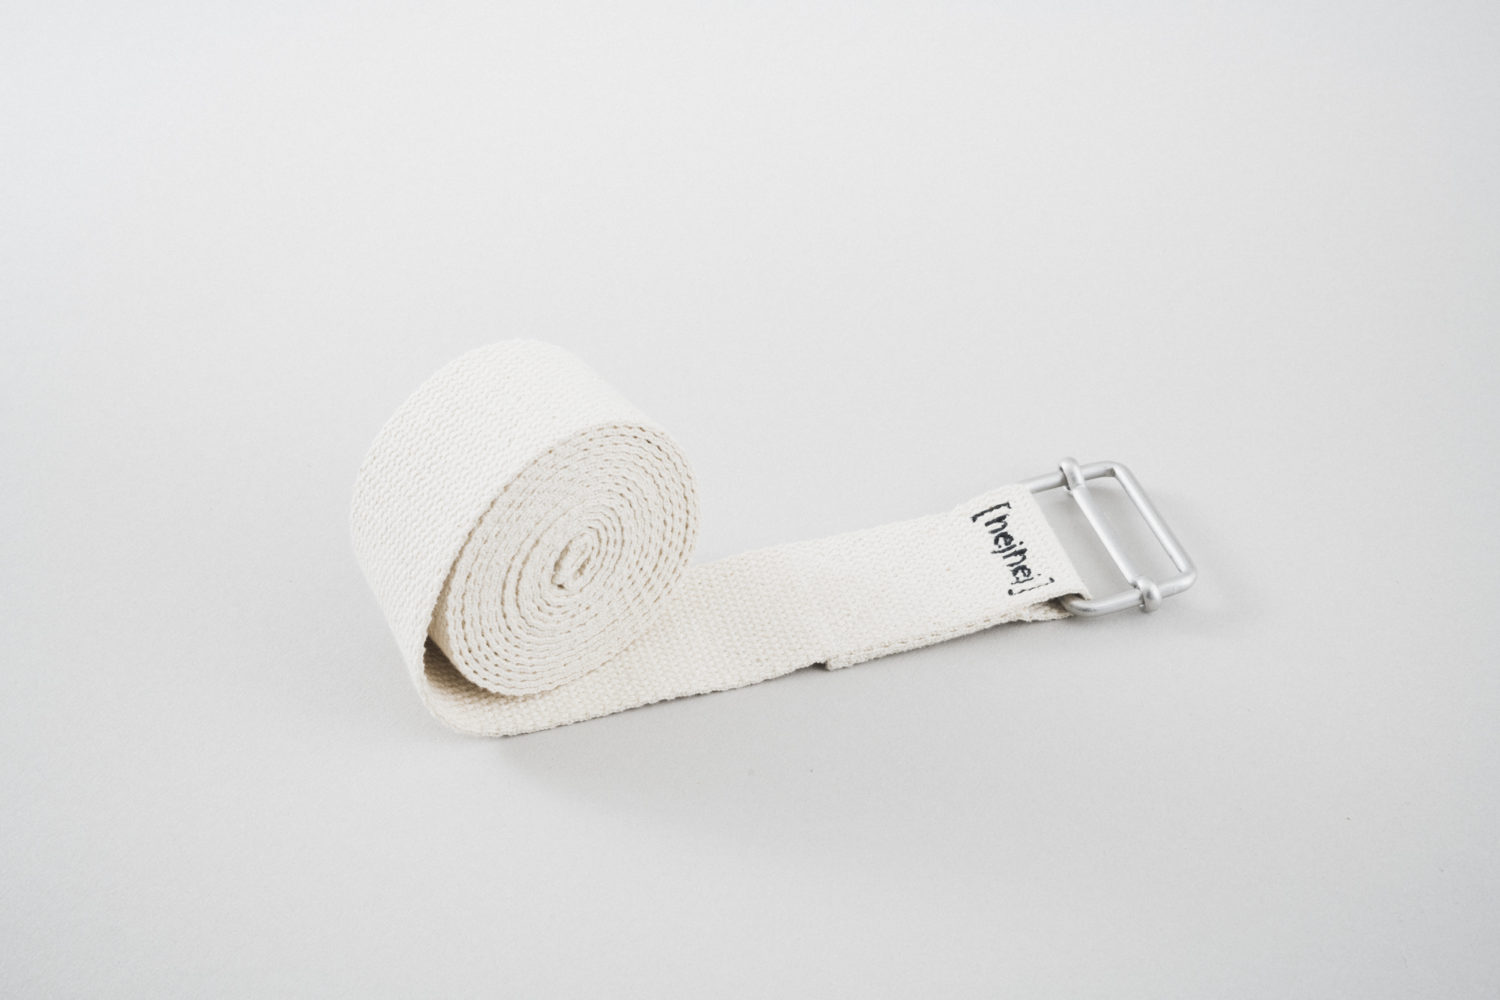 Yoga strap made of hemp